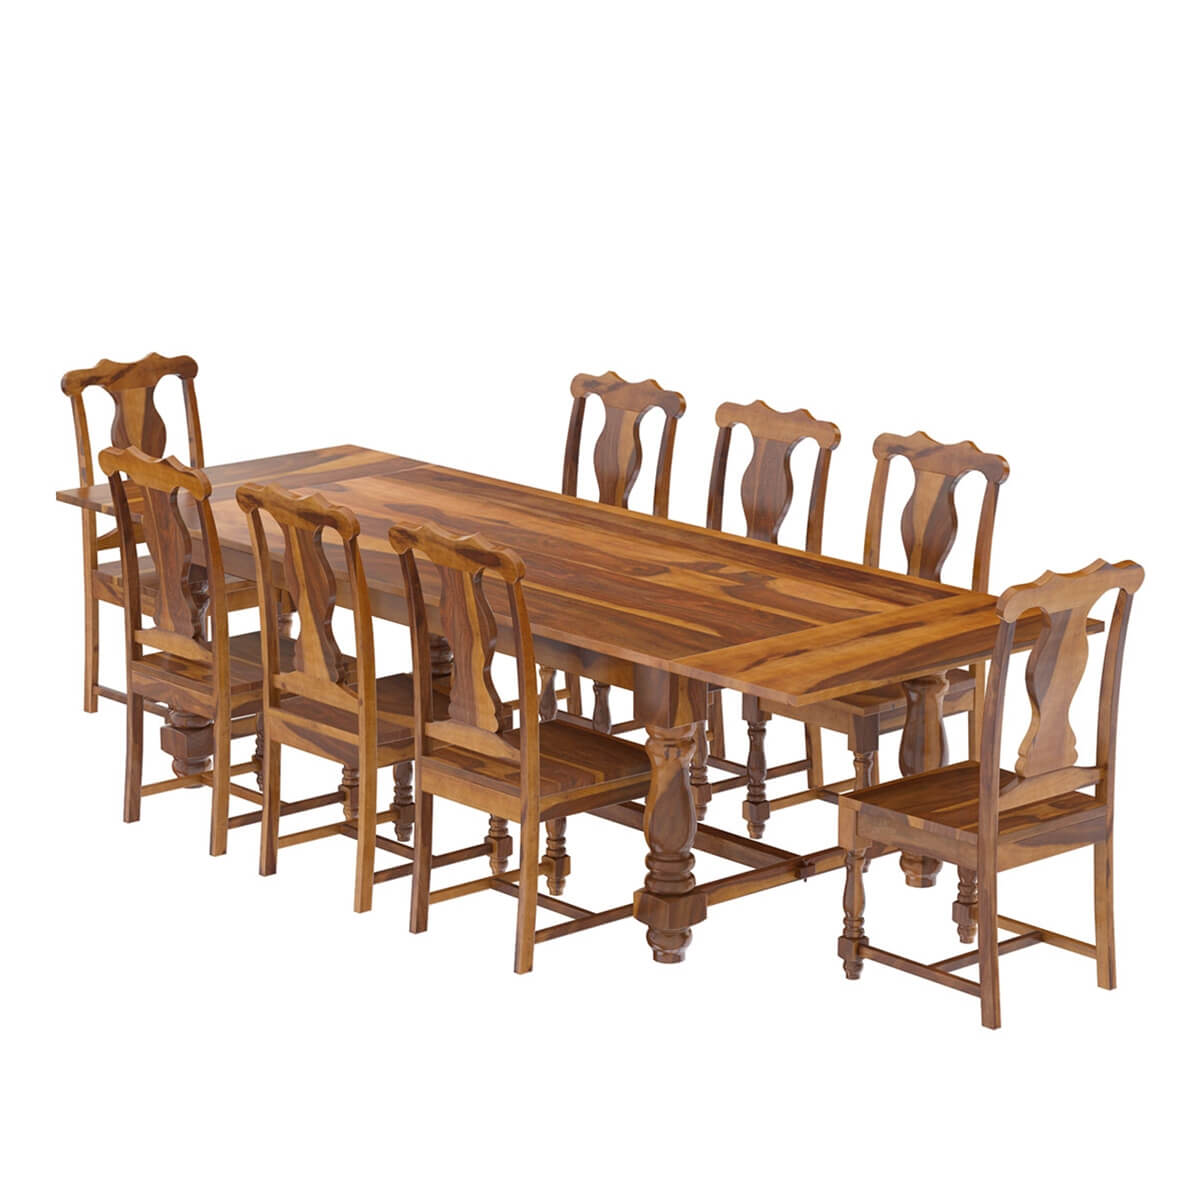 Solid Wood Furniture ~ Rustic solid wood dining table chair set furniture w